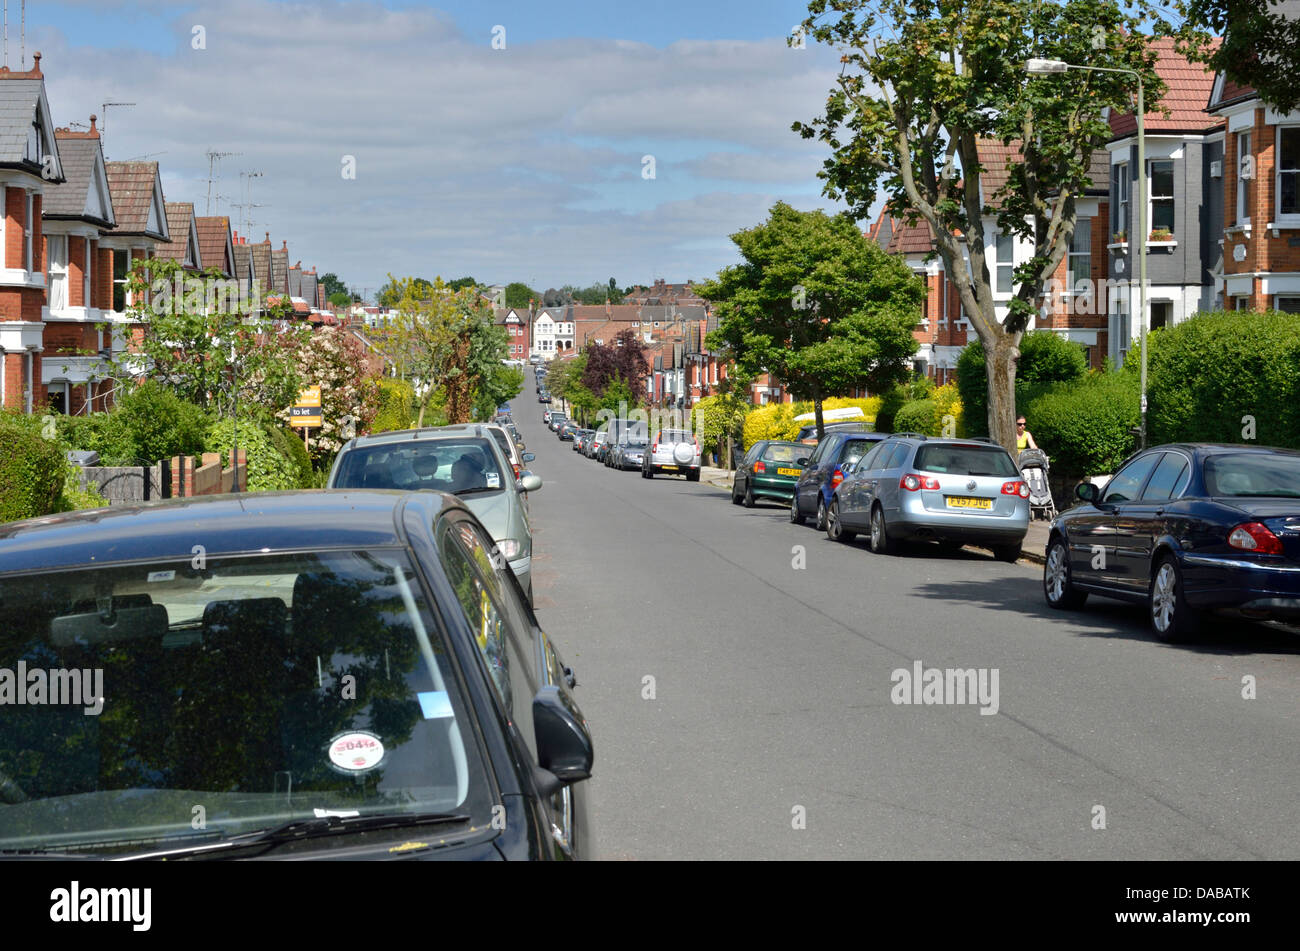 Sutton Road, Muswell Hill N10, London, UK. - Stock Image